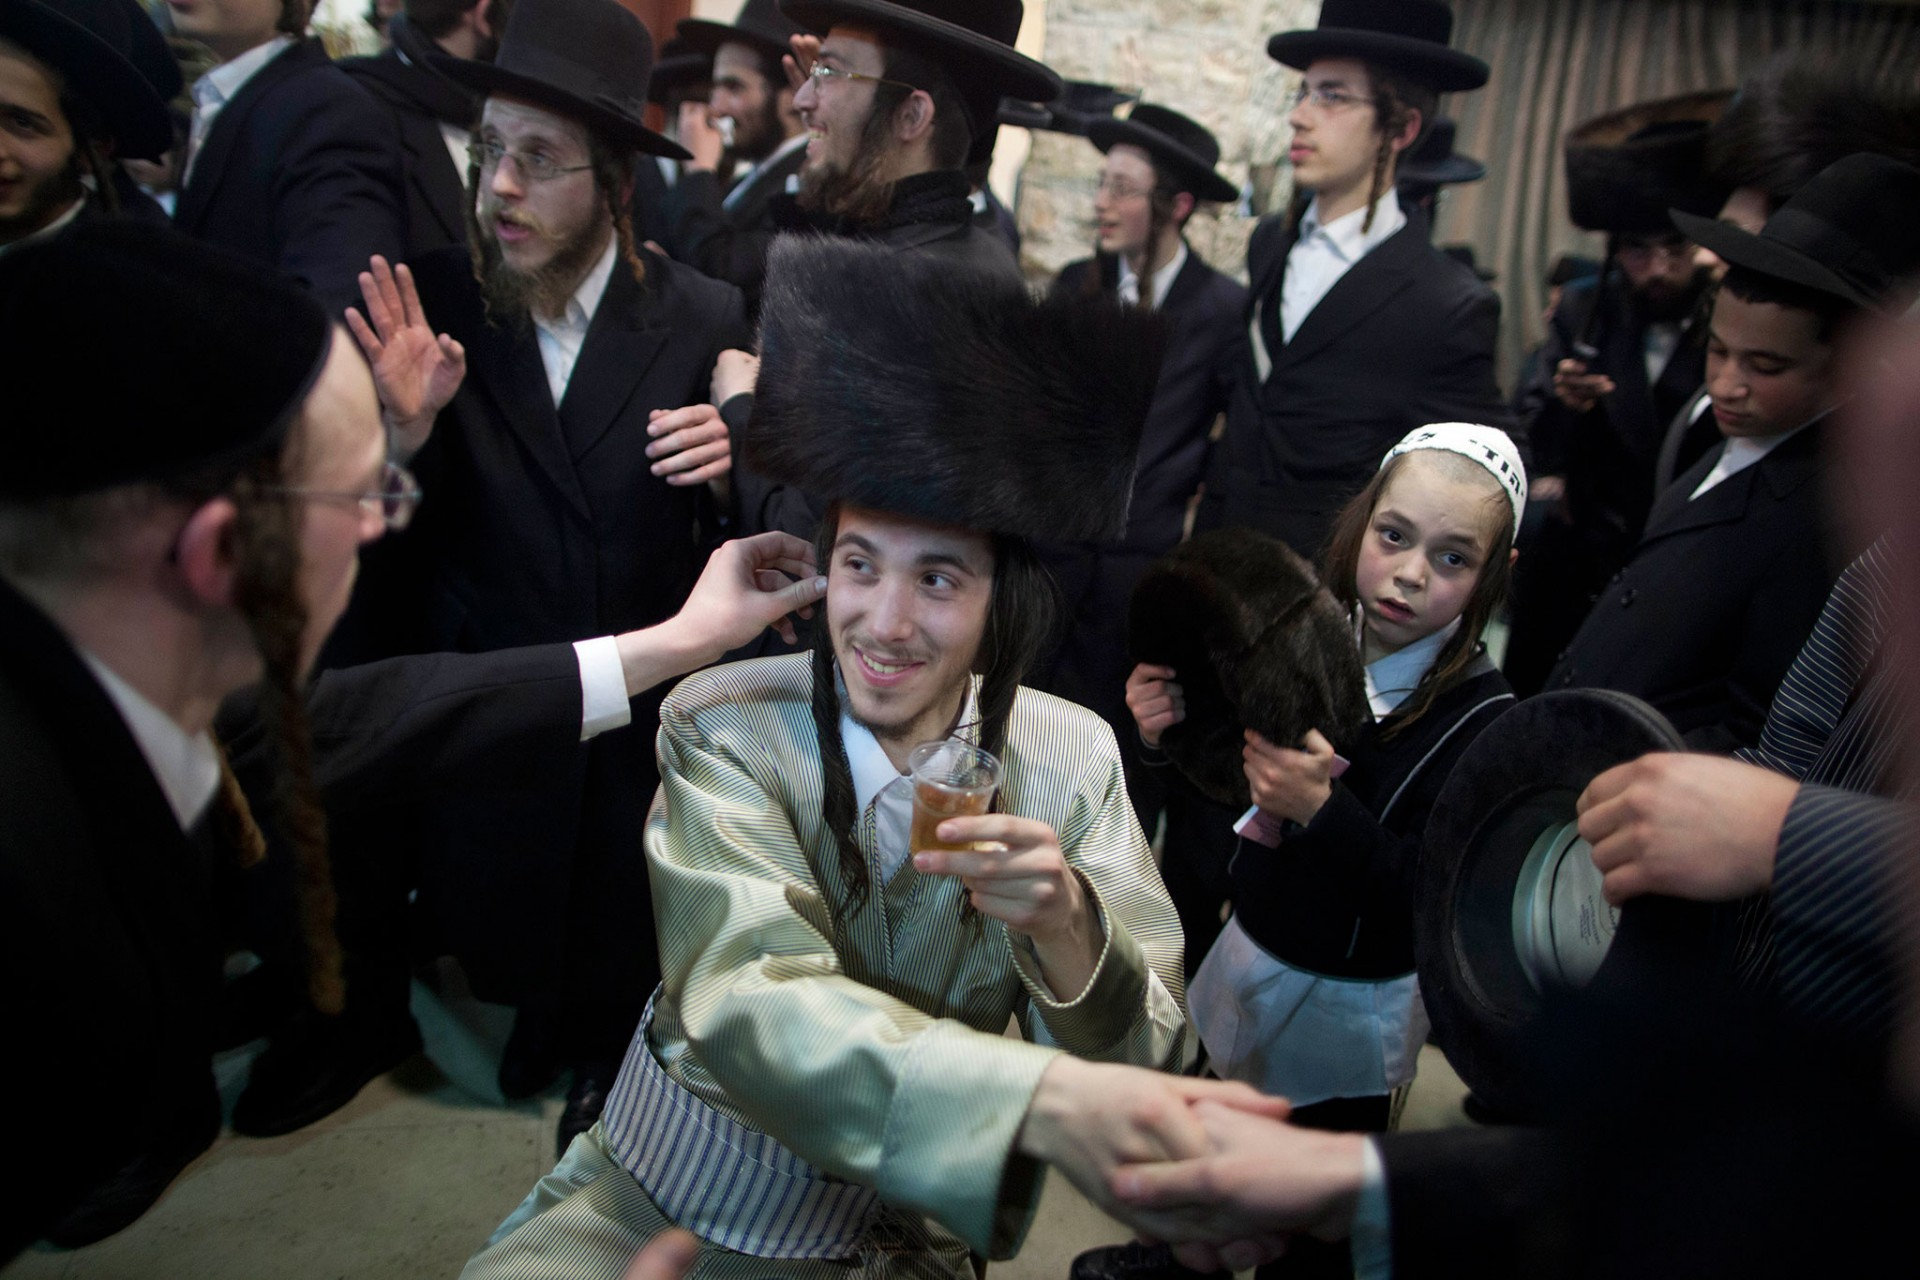 Ultra Orthodox Jewish Wedding